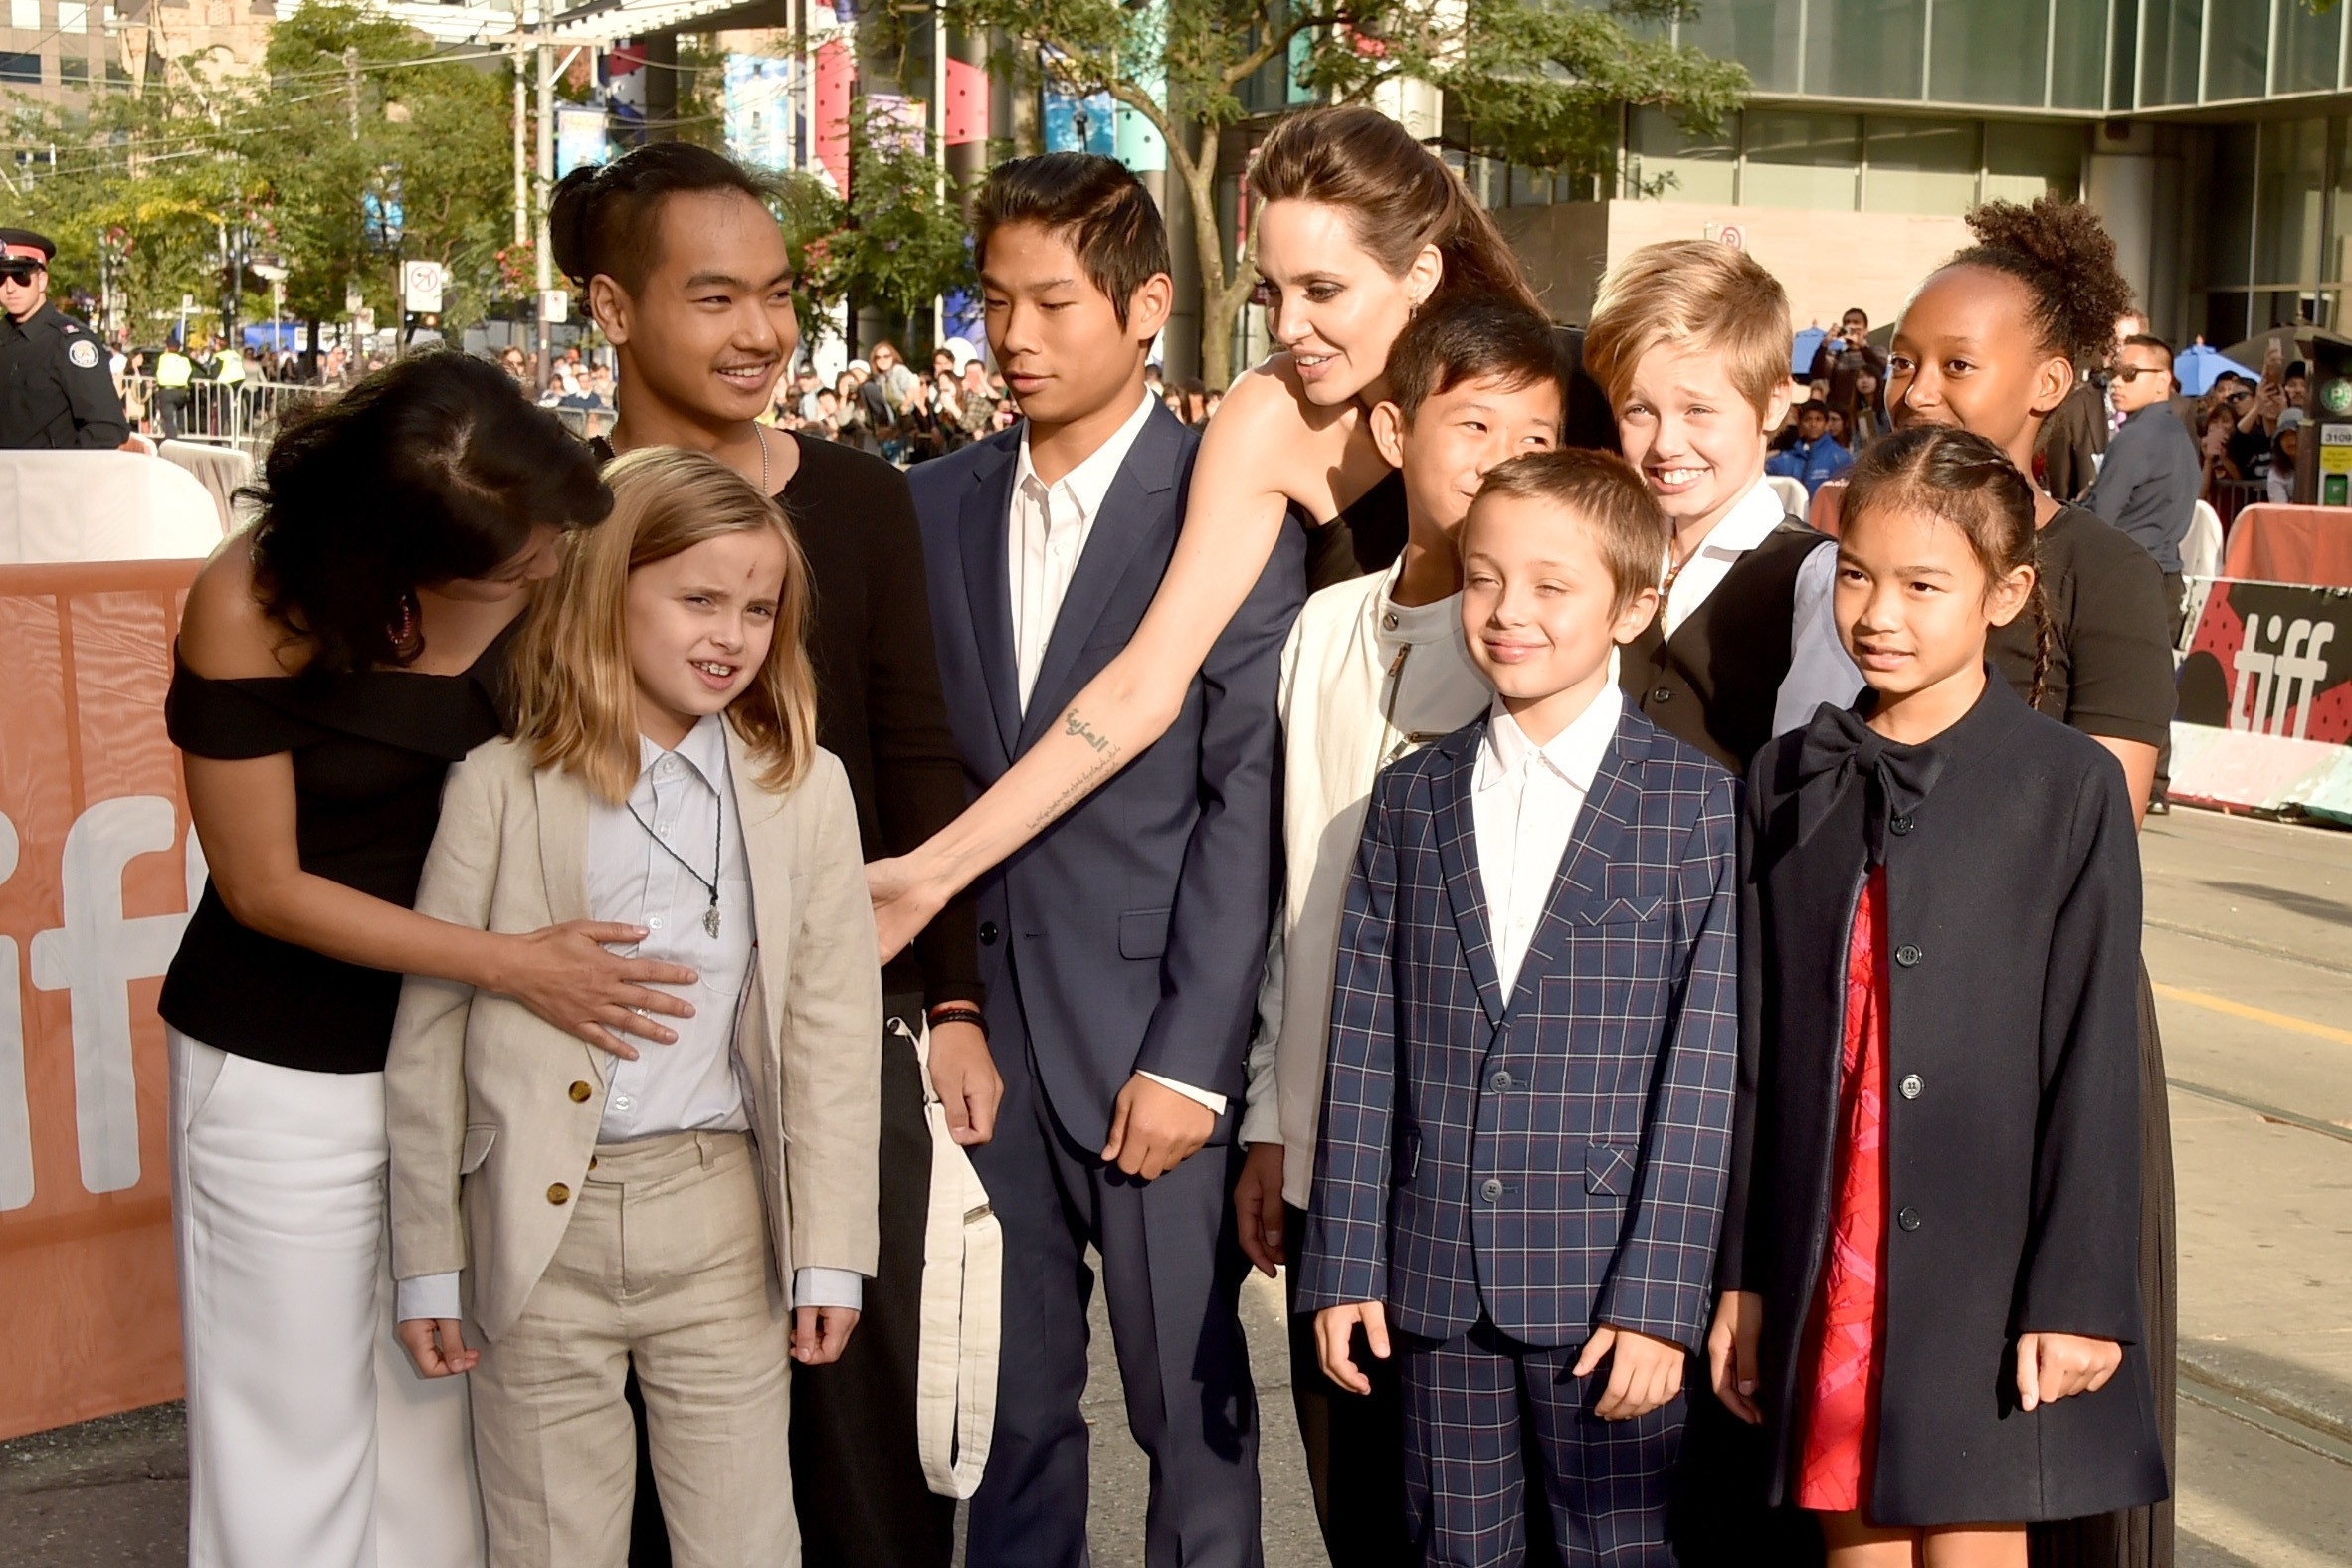 """TORONTO, ON - SEPTEMBER 11:  (L-R) Loung Ung, Vivienne Jolie-Pitt, Maddox Jolie-Pitt, Pax Jolie-Pitt, Angelina Jolie, Kimhak Mun, Knox Jolie-Pitt, Shiloh Jolie-Pitt, Zahara Jolie-Pitt and Sareum Srey Moch attend the """"First They Killed My Father"""" premiere  (Foto: Getty Images)"""